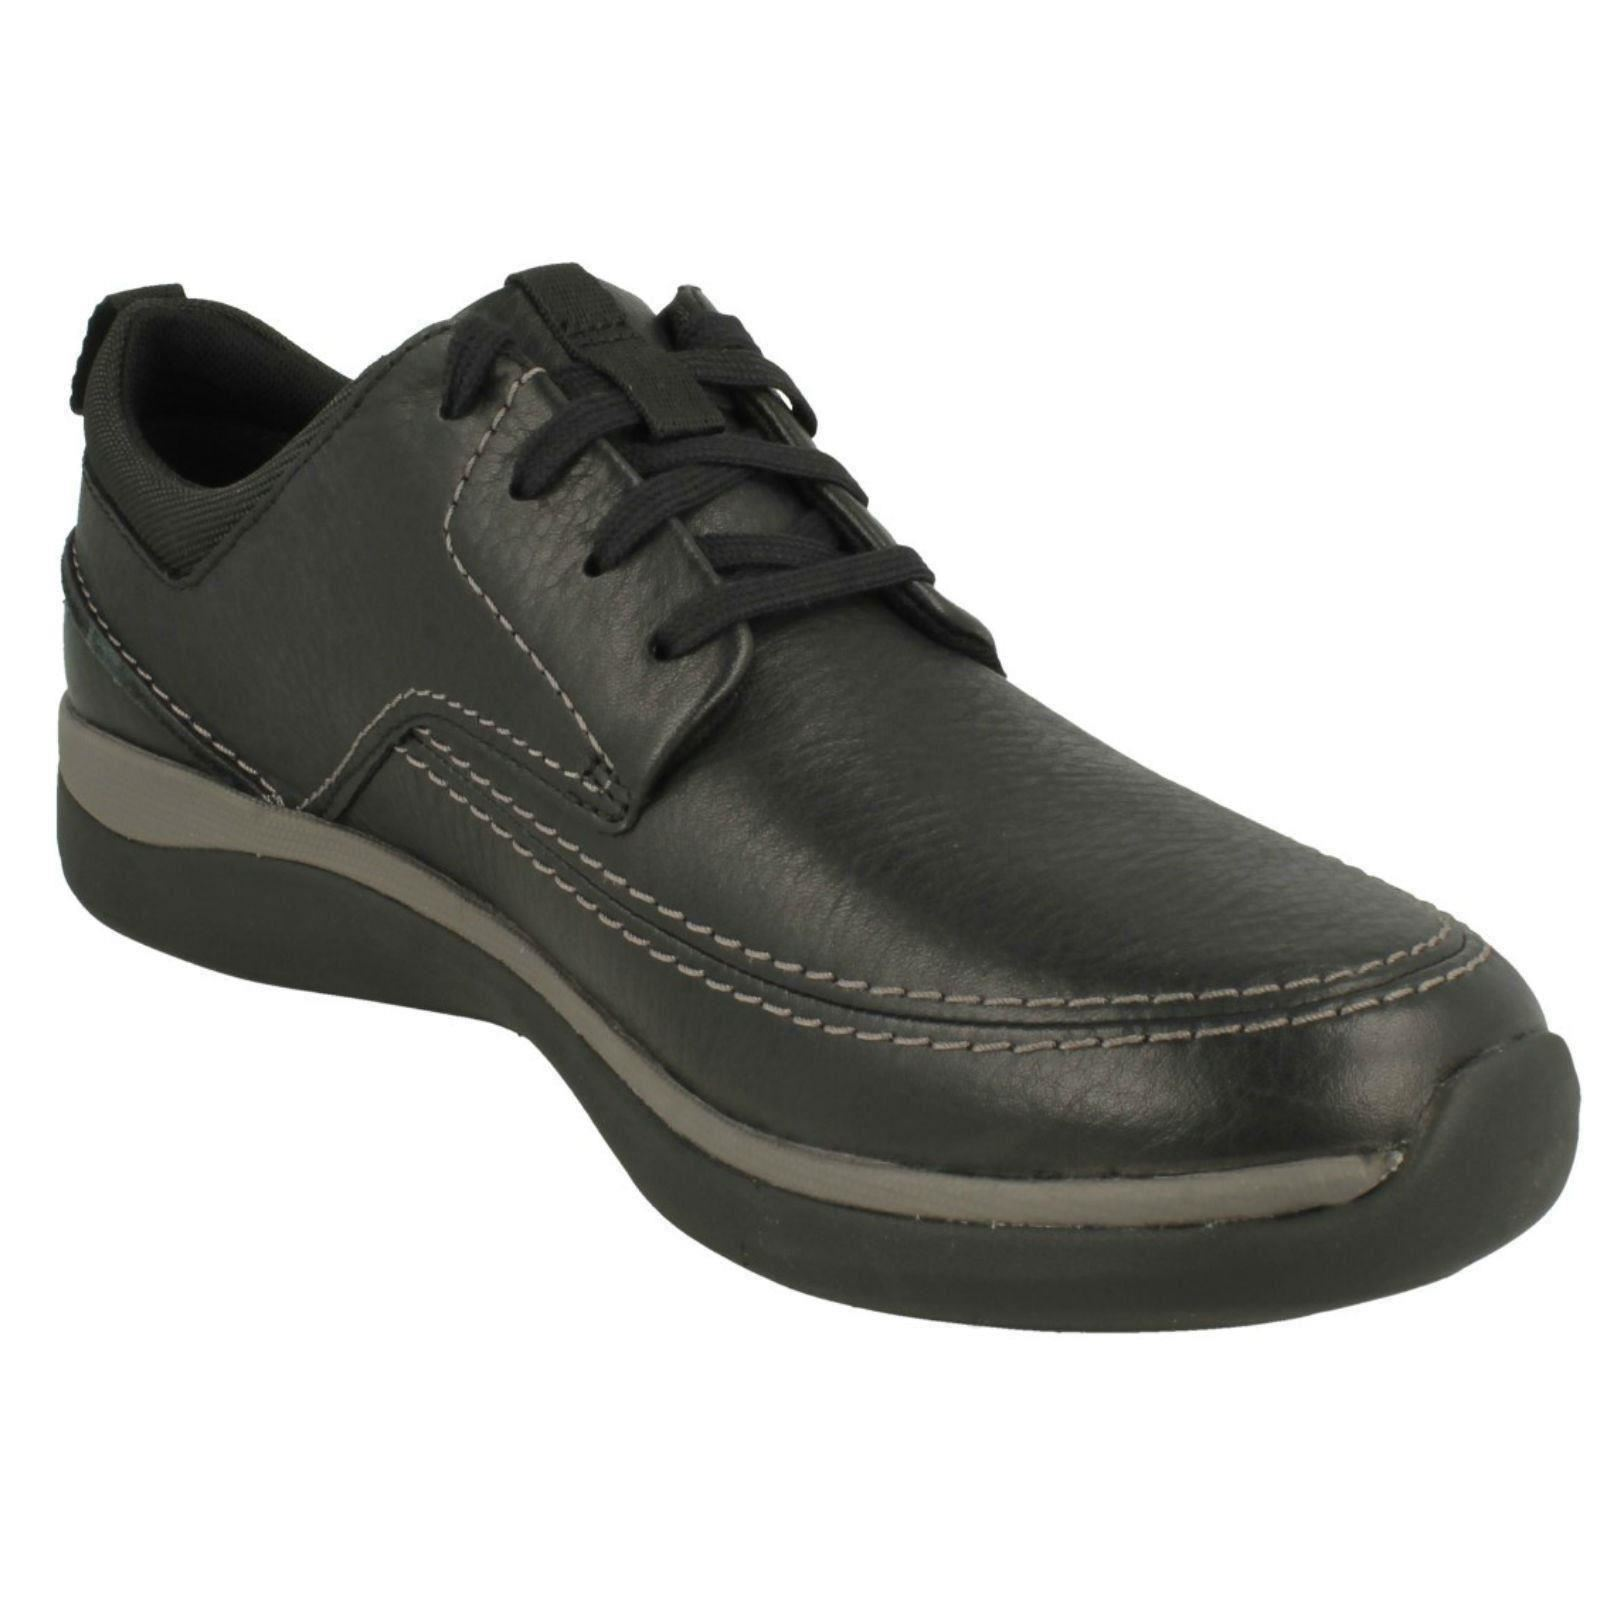 Mens-Unstructured-by-Clarks-Lace-Up-Shoes-039-Garratt-Street-039 thumbnail 10